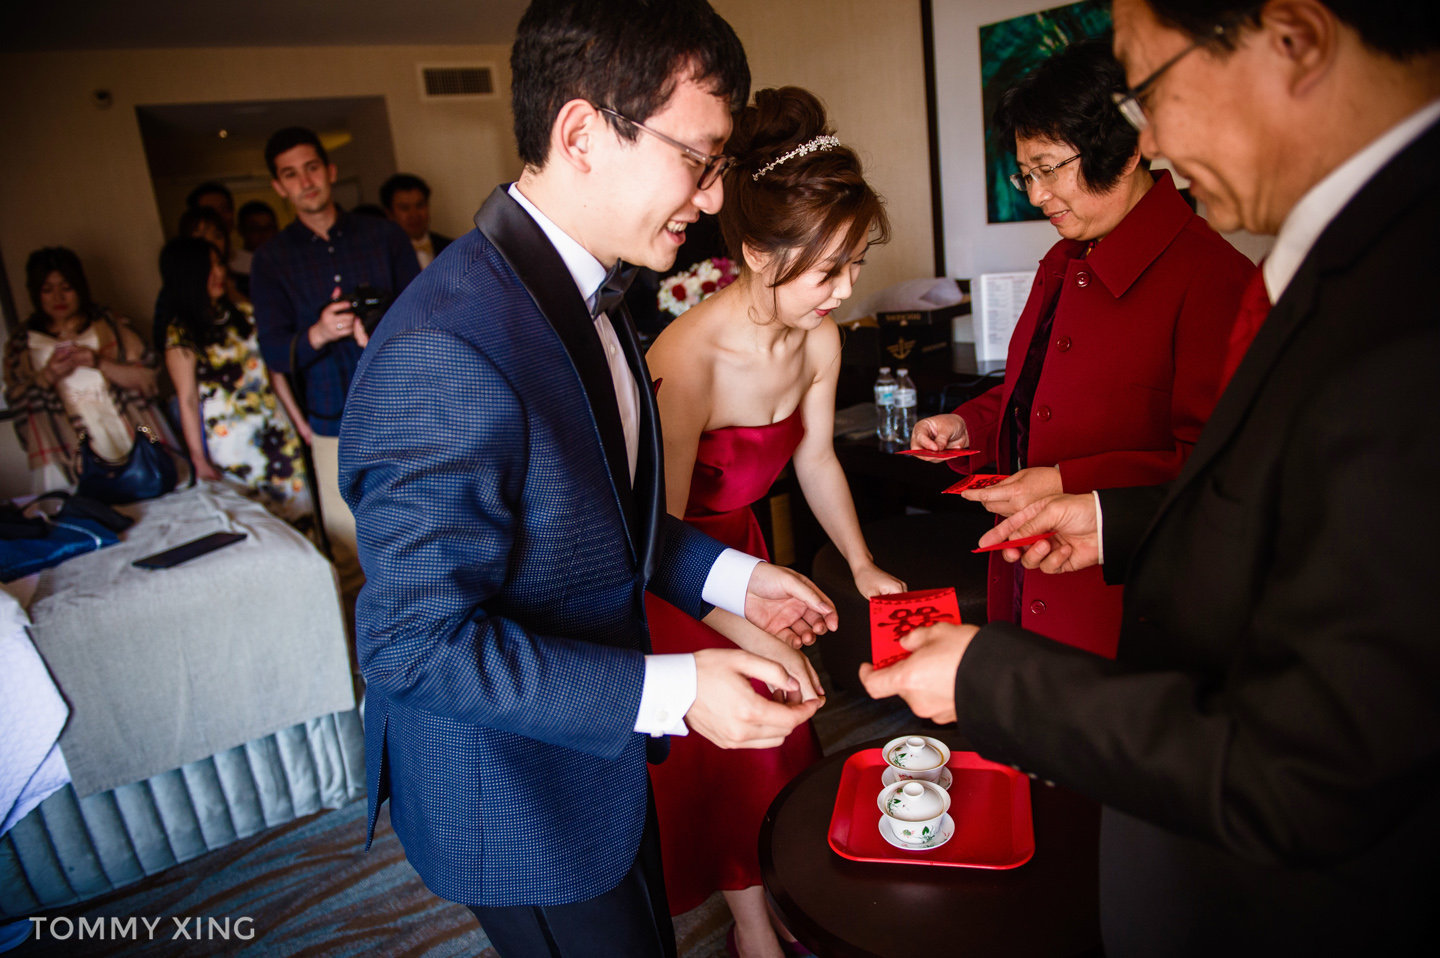 Los Angeles Wedding Photographer 洛杉矶婚礼婚纱摄影师 Tommy Xing-61.JPG